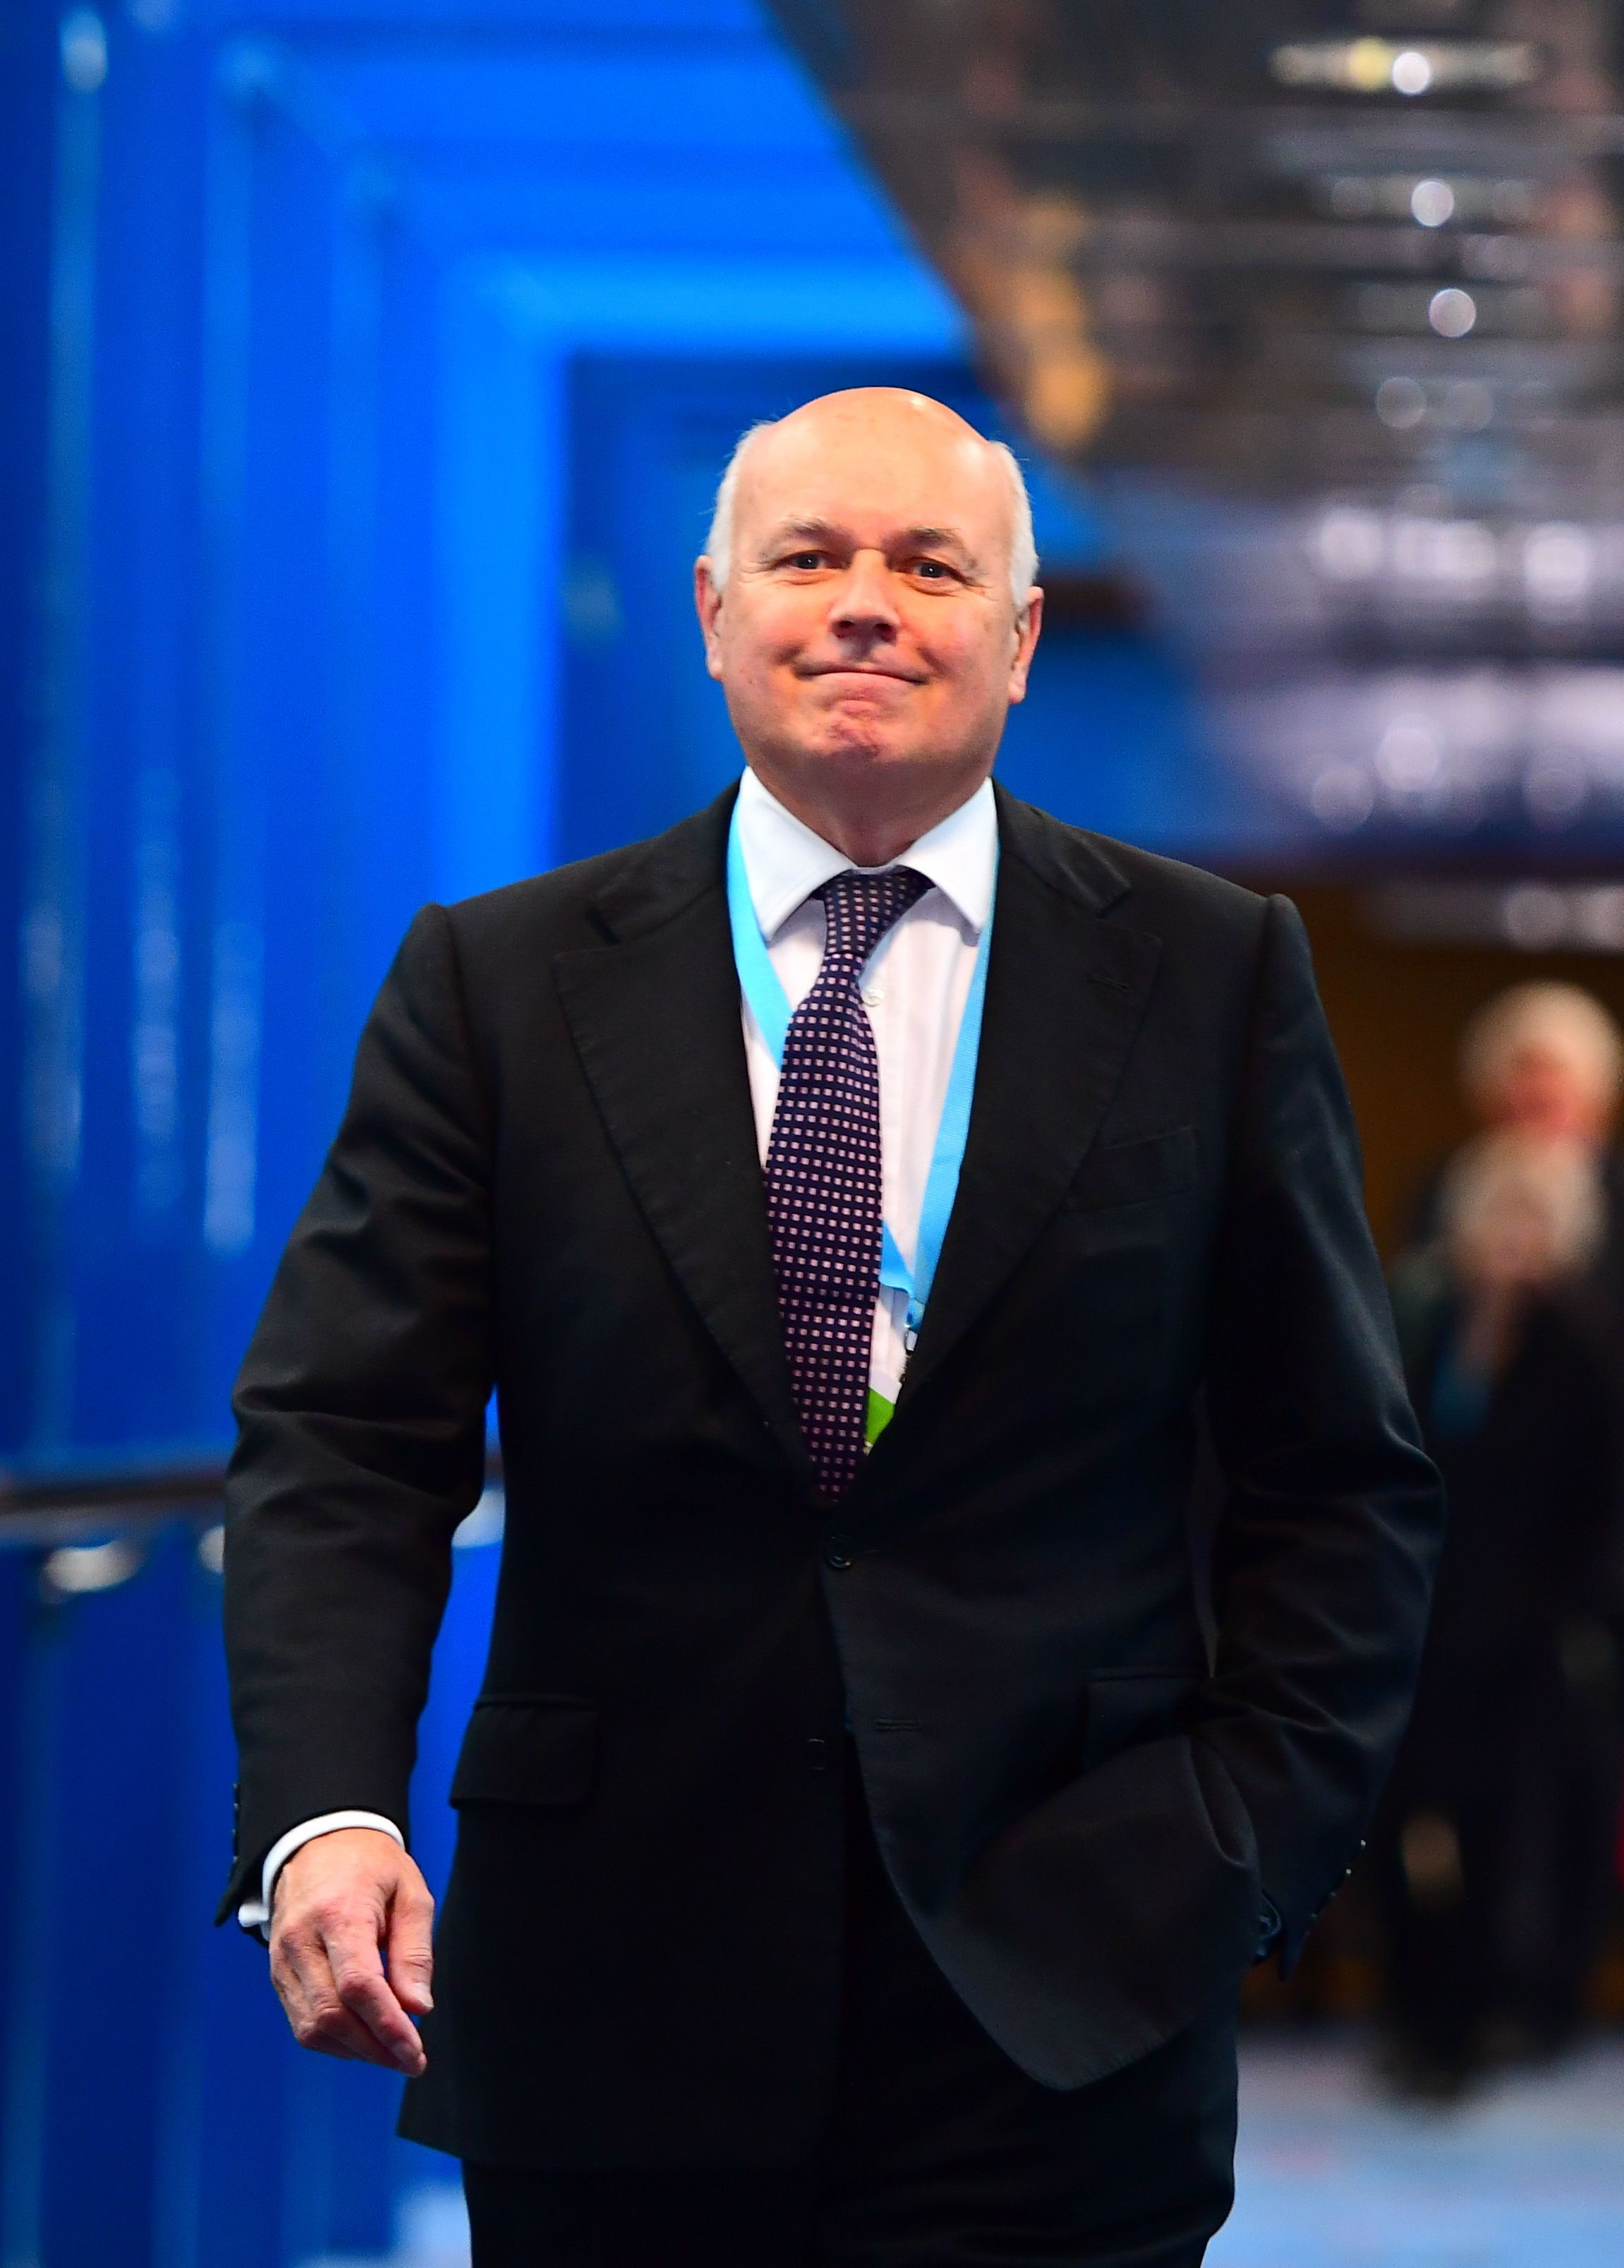 Iain Duncan Smith also voted to scrap the Welsh assembly